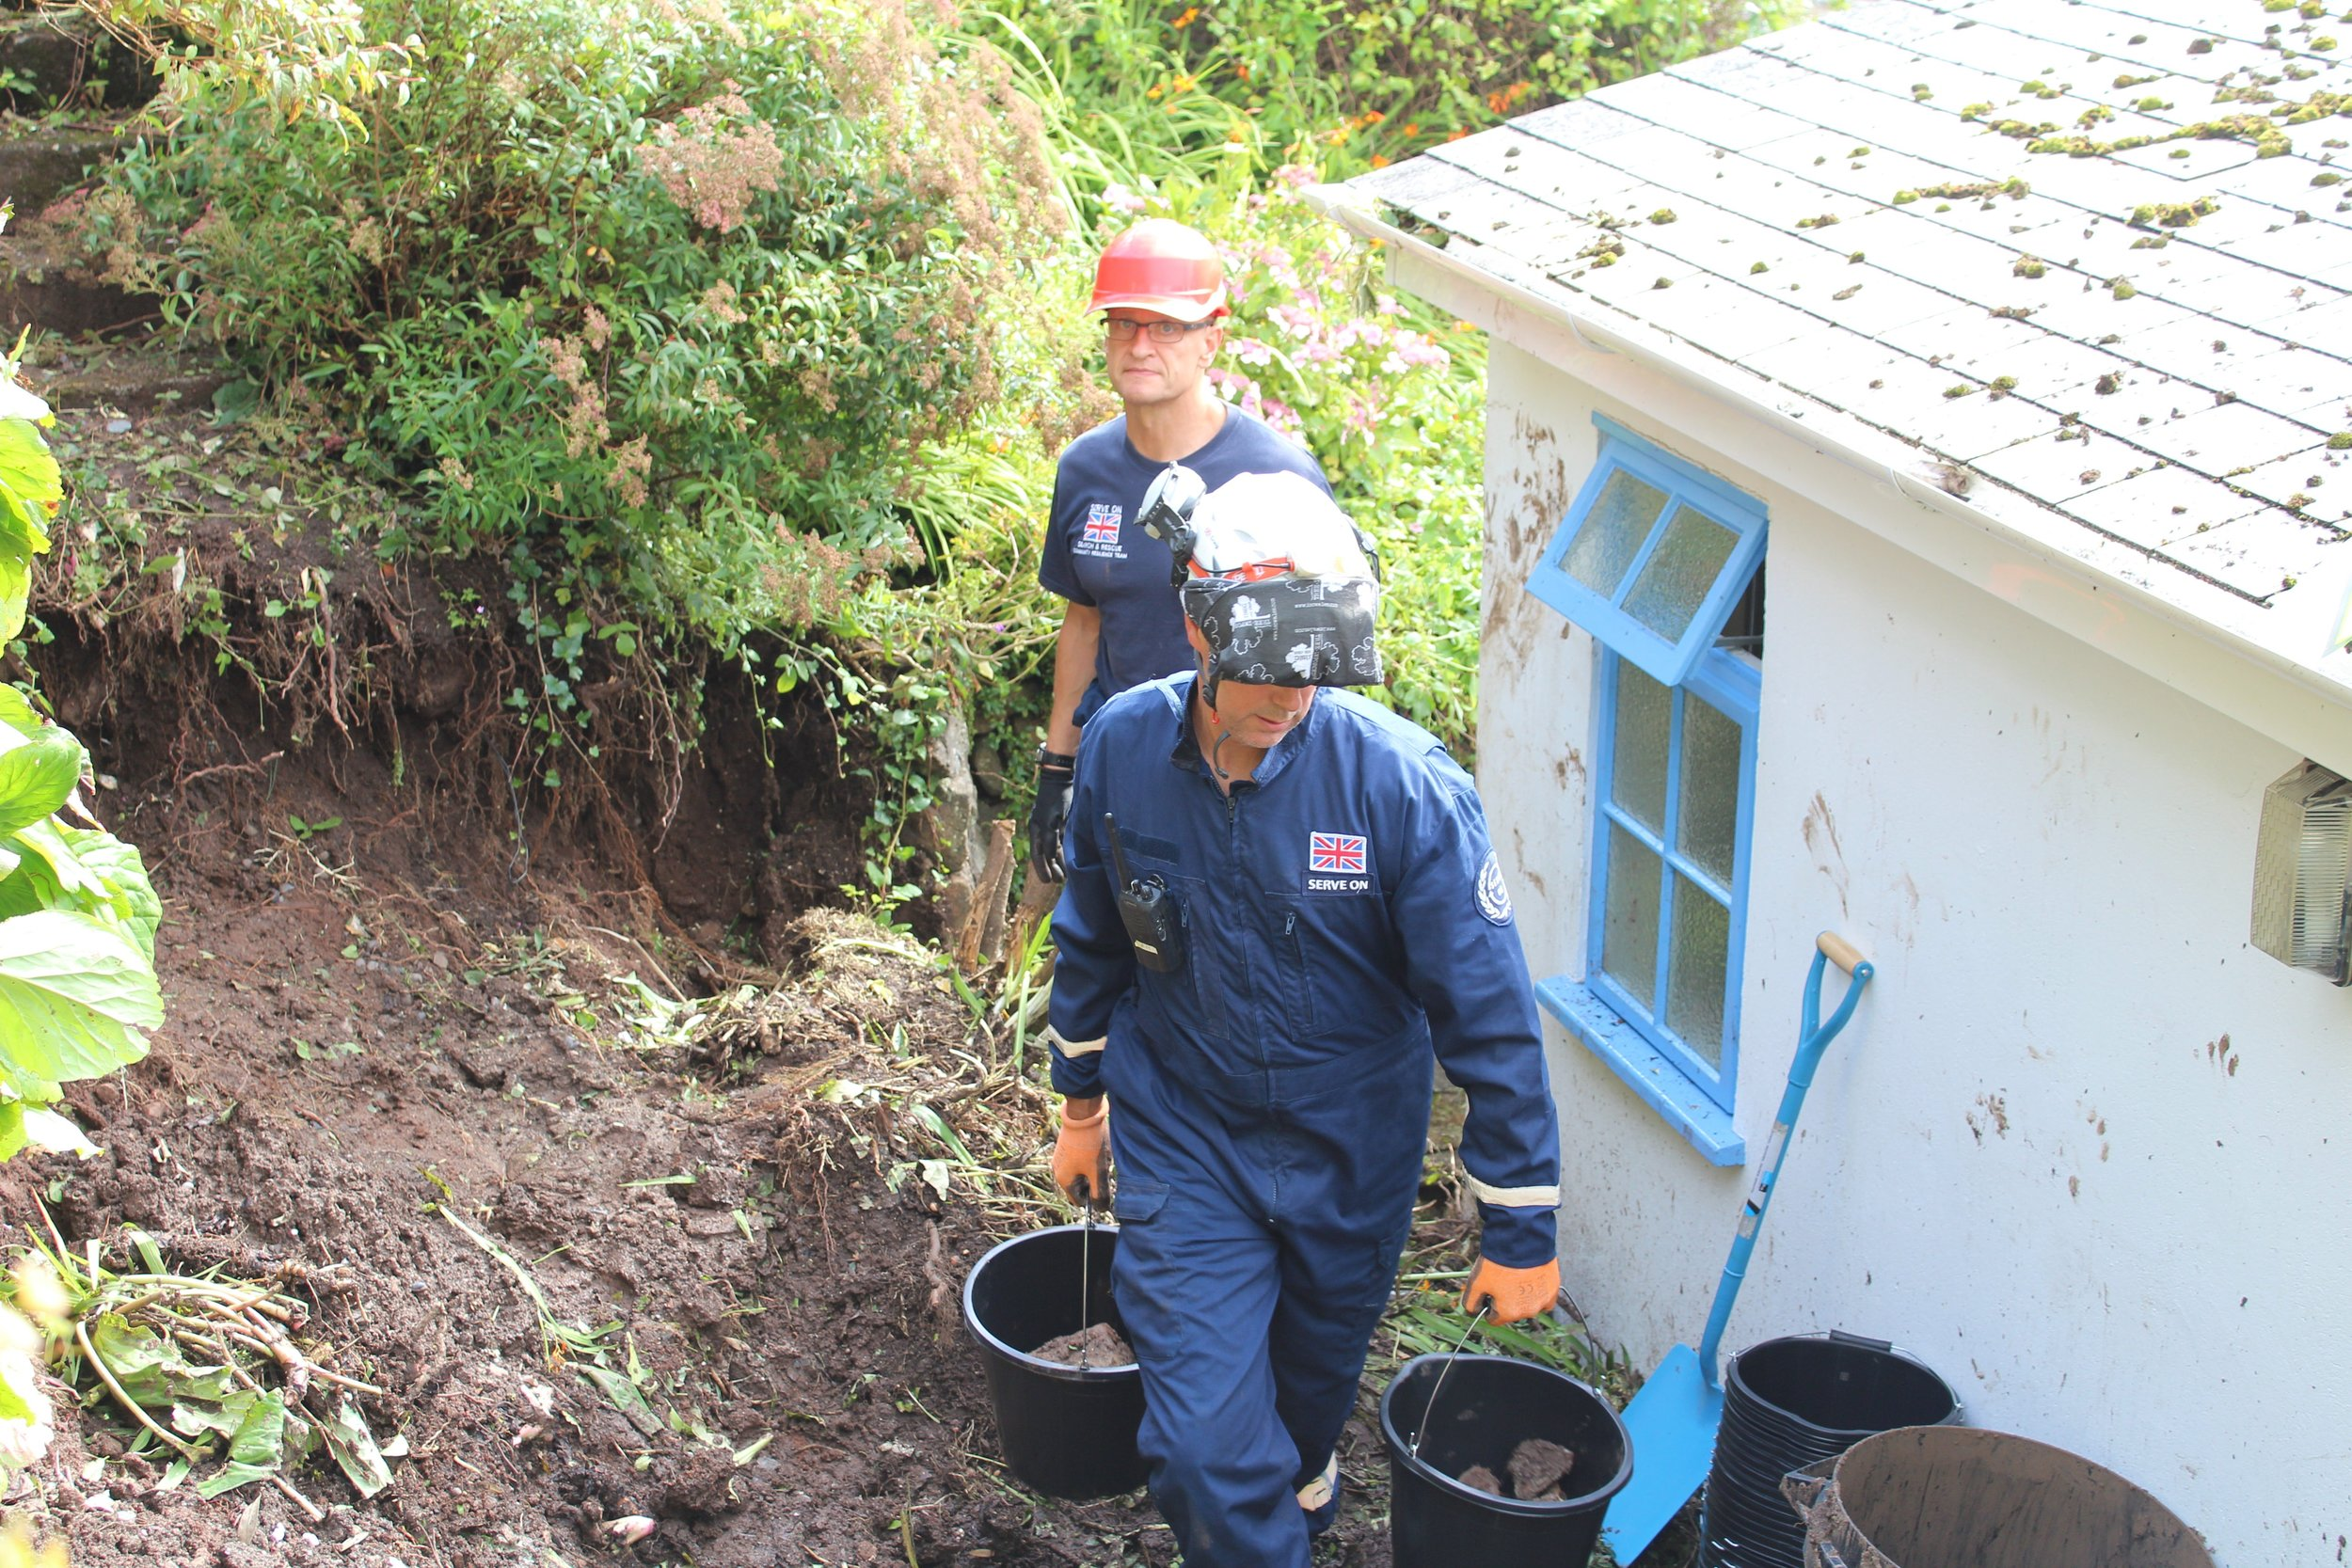 The Serve On team get to work clearing debris